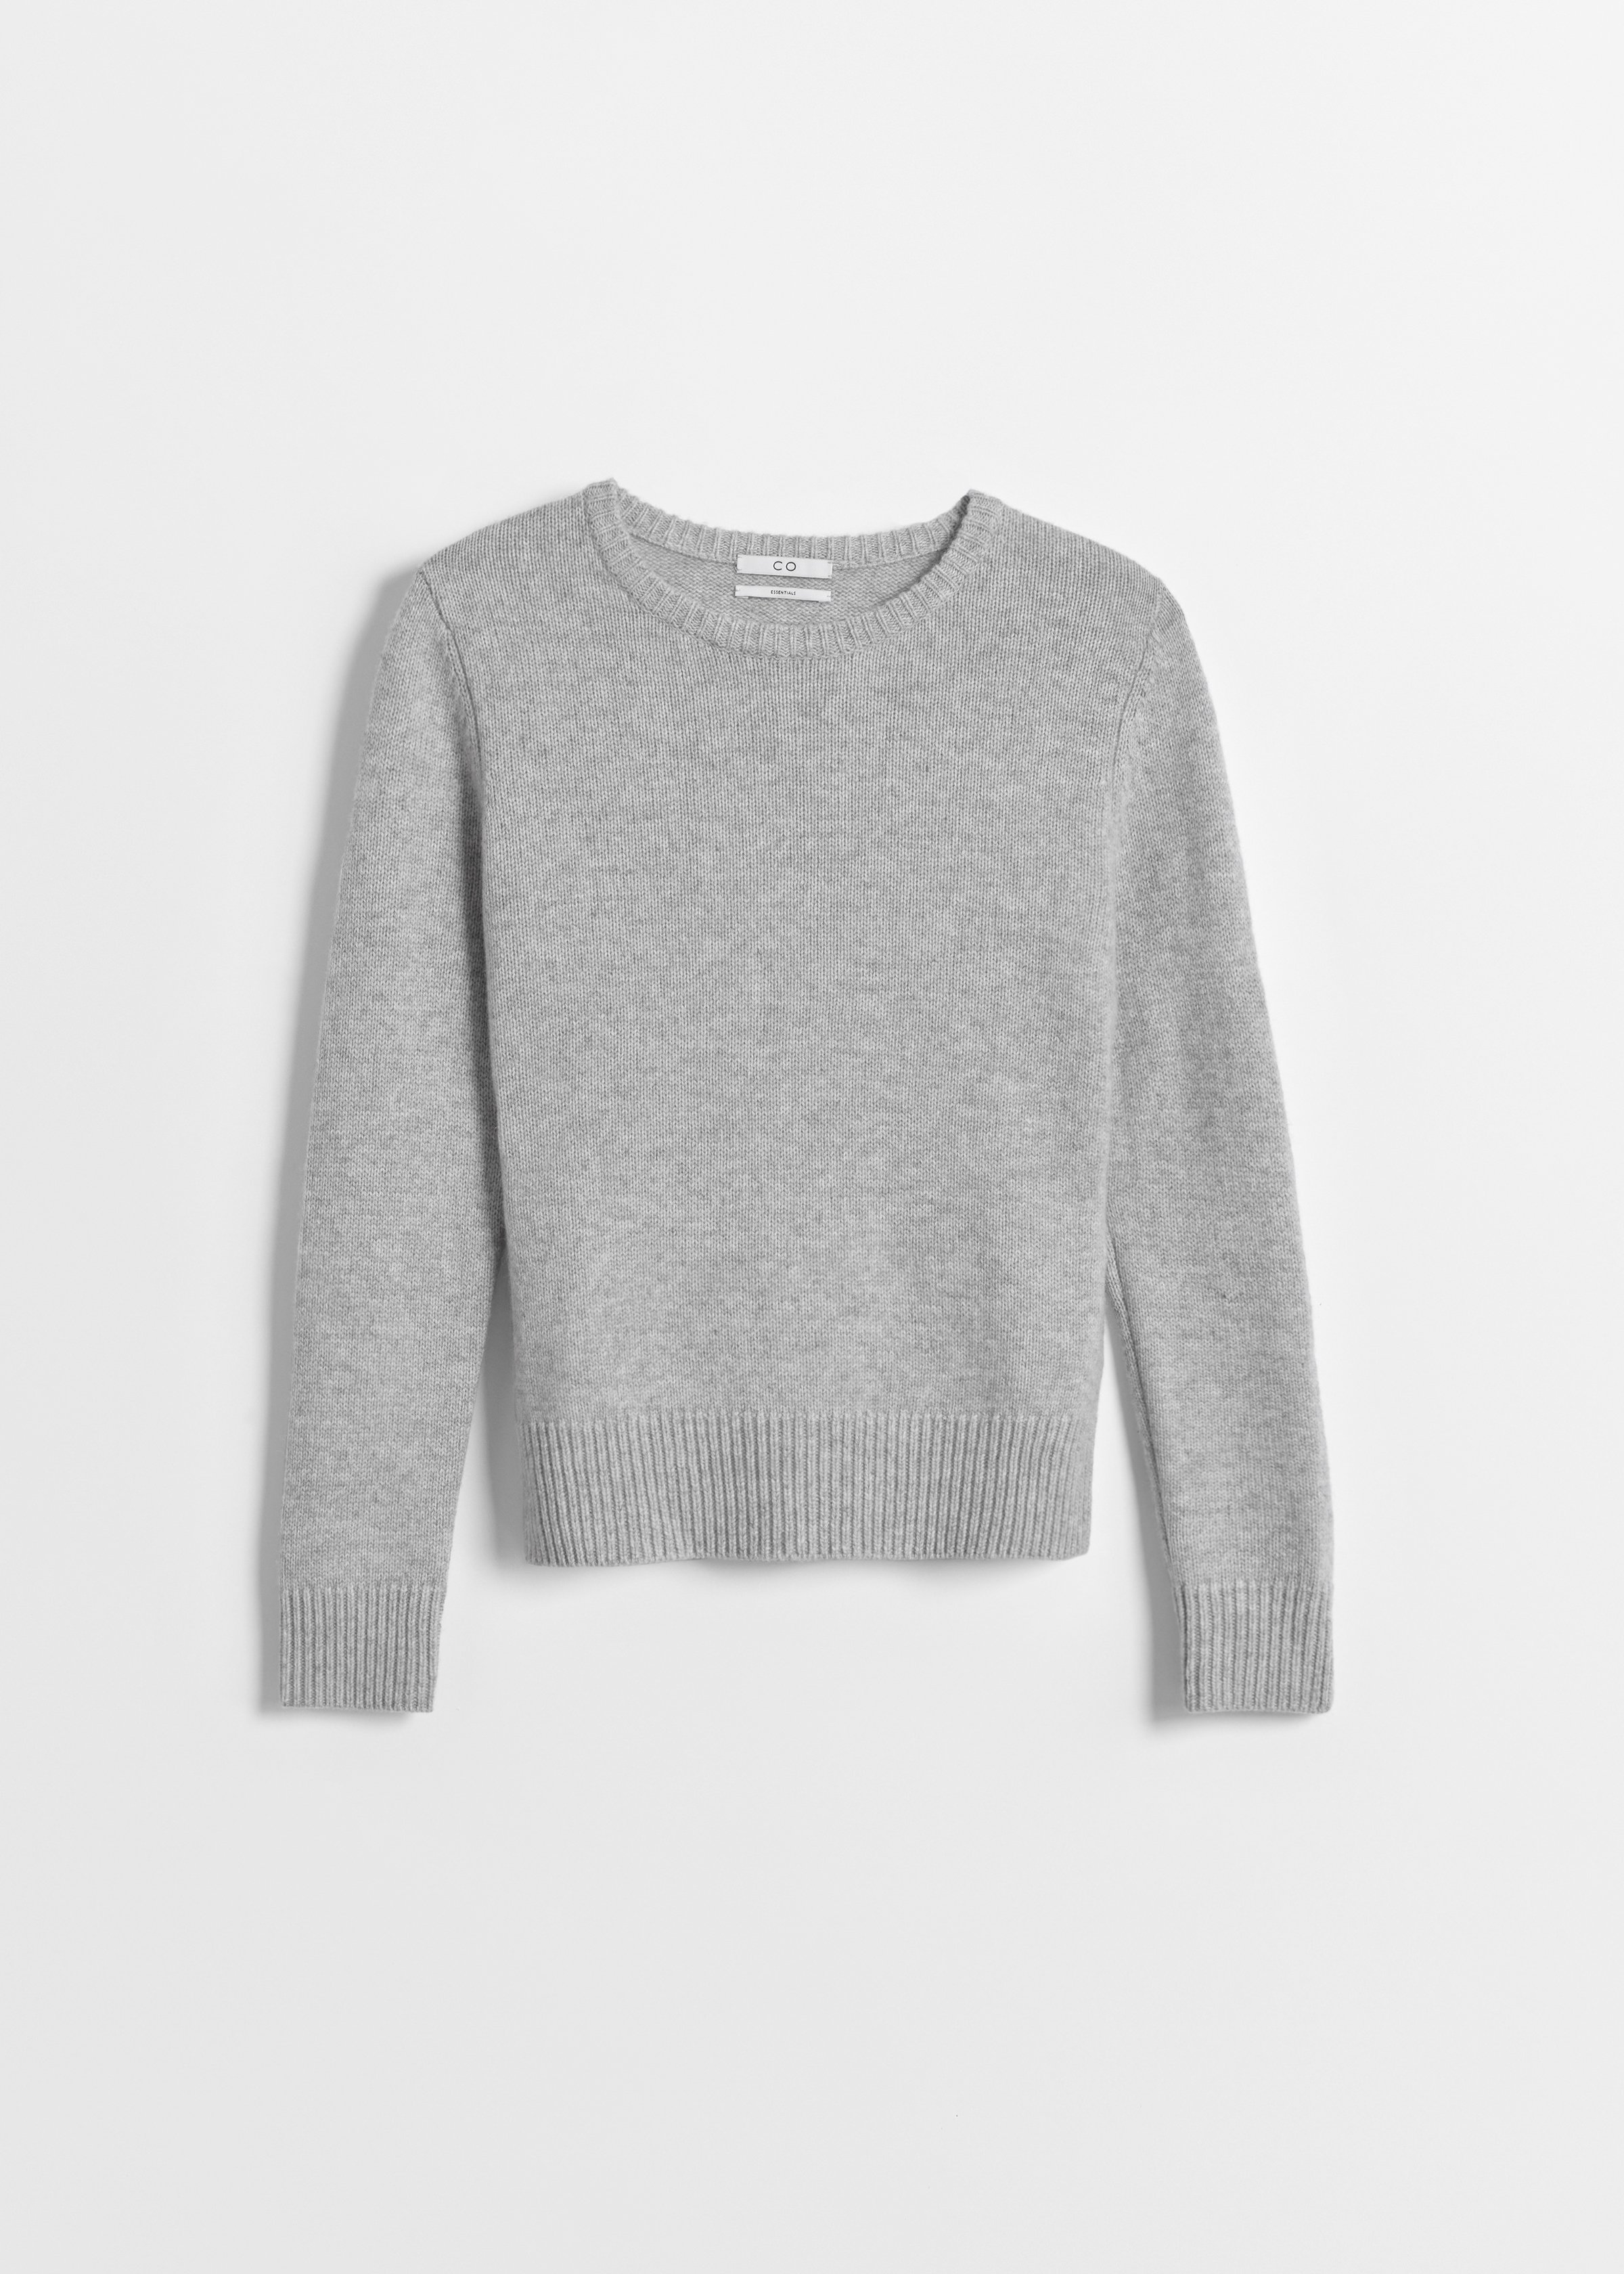 Cashmere Crew Neck Sweater - Light Grey - CO